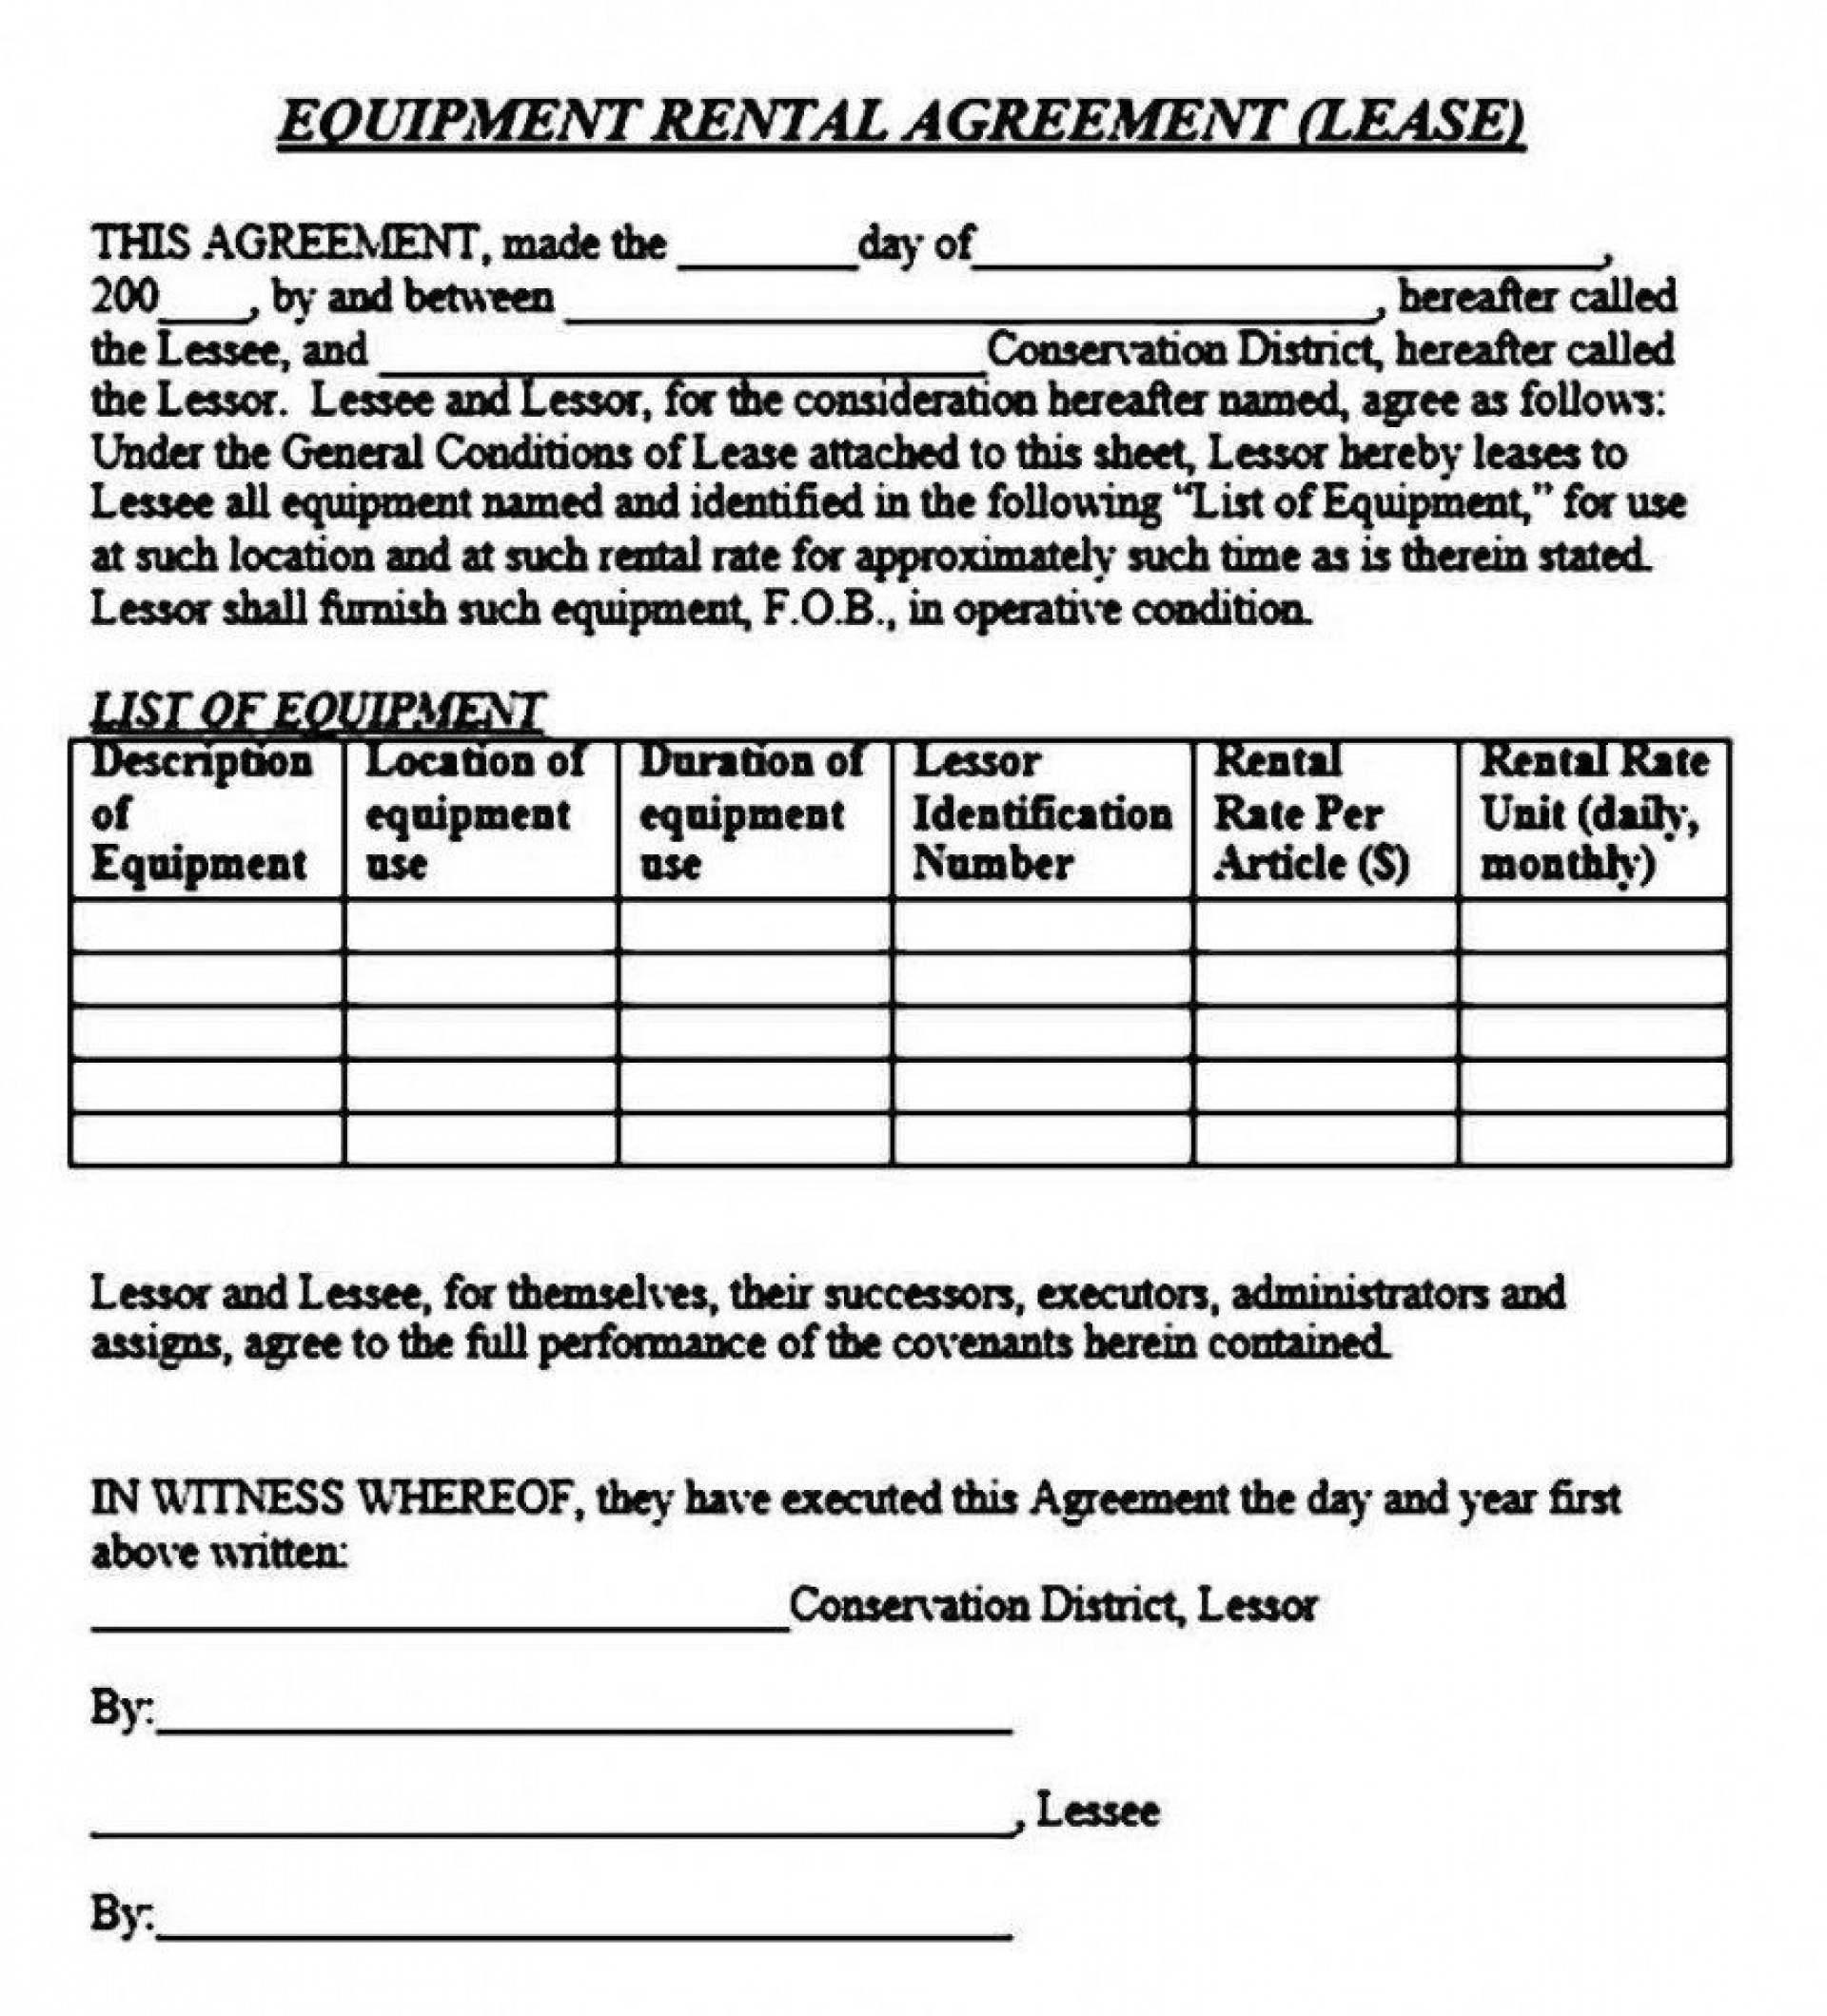 010 Awful Rental Agreement Template Word Canada Inspiration 1920